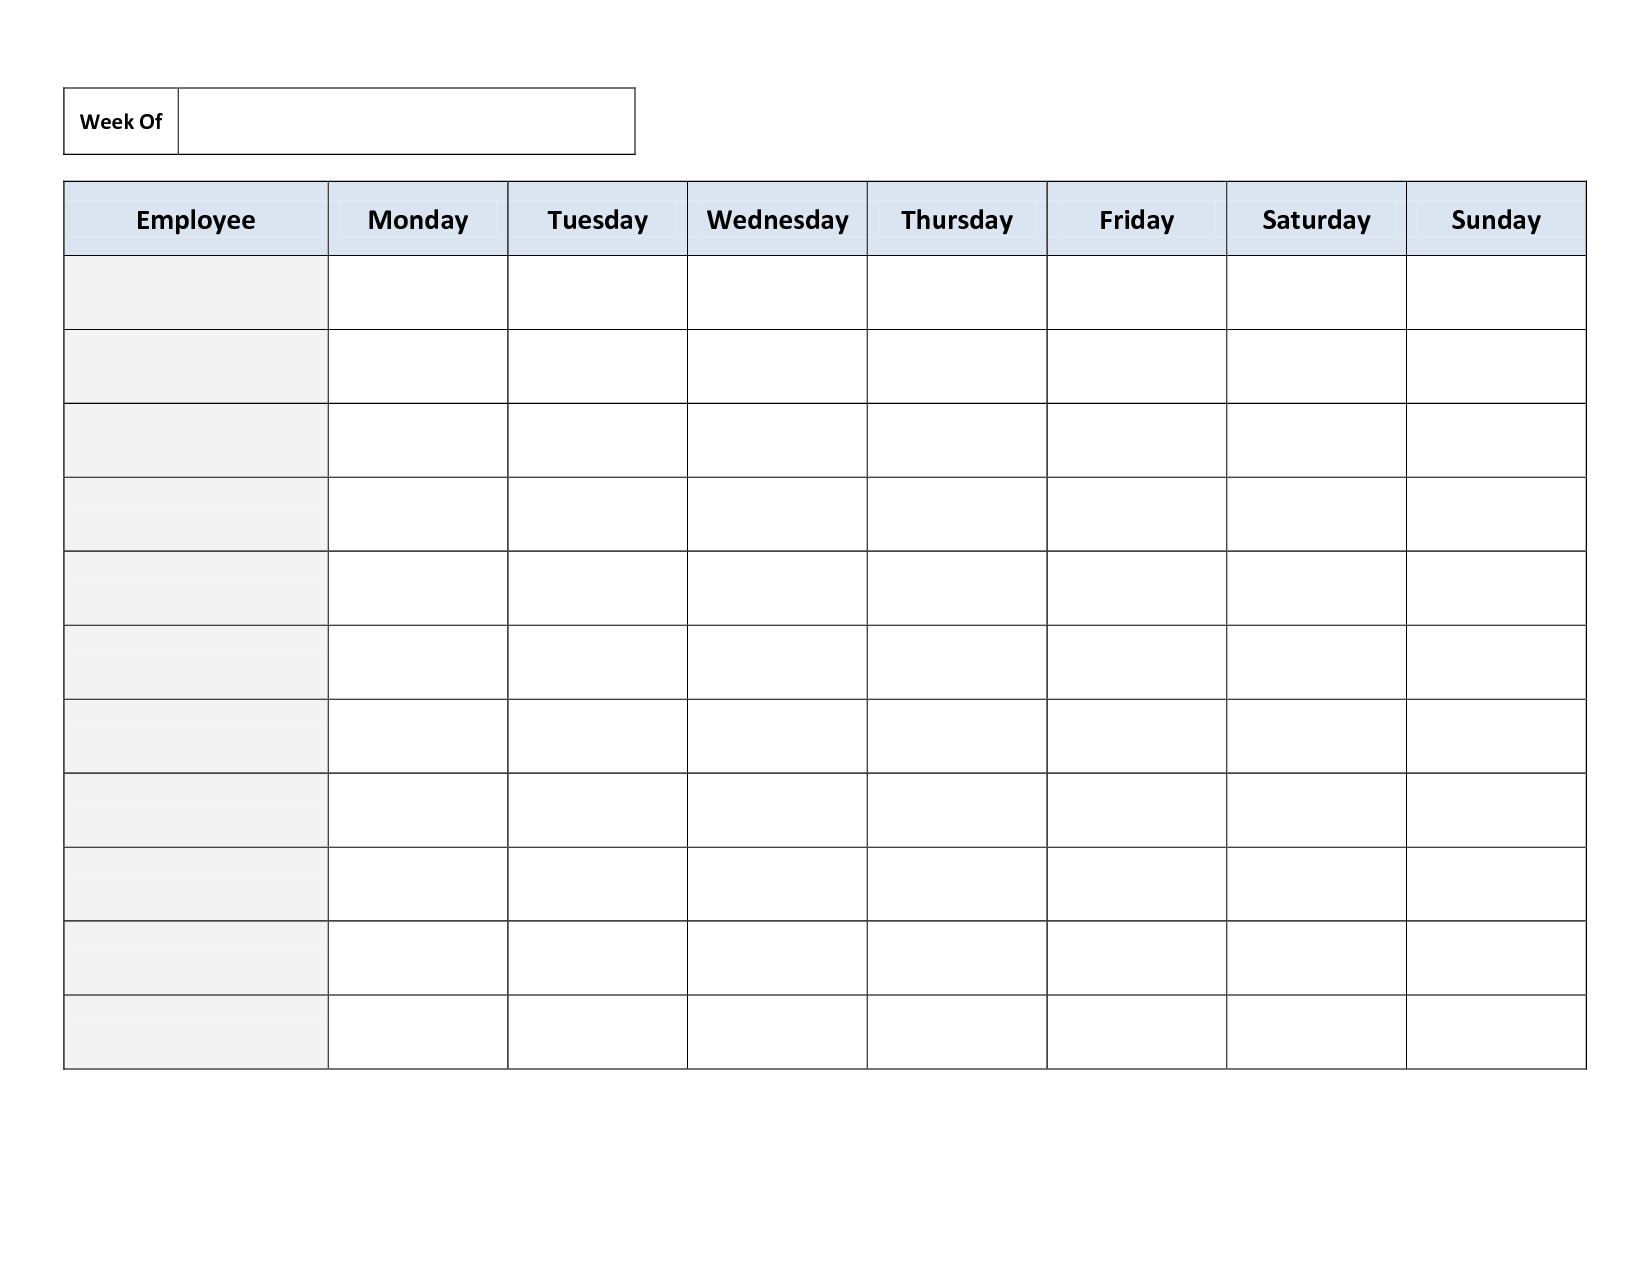 Weekly Employee Work Schedule Template. Free Blank Schedule.pdf - Free Printable Blank Work Schedules